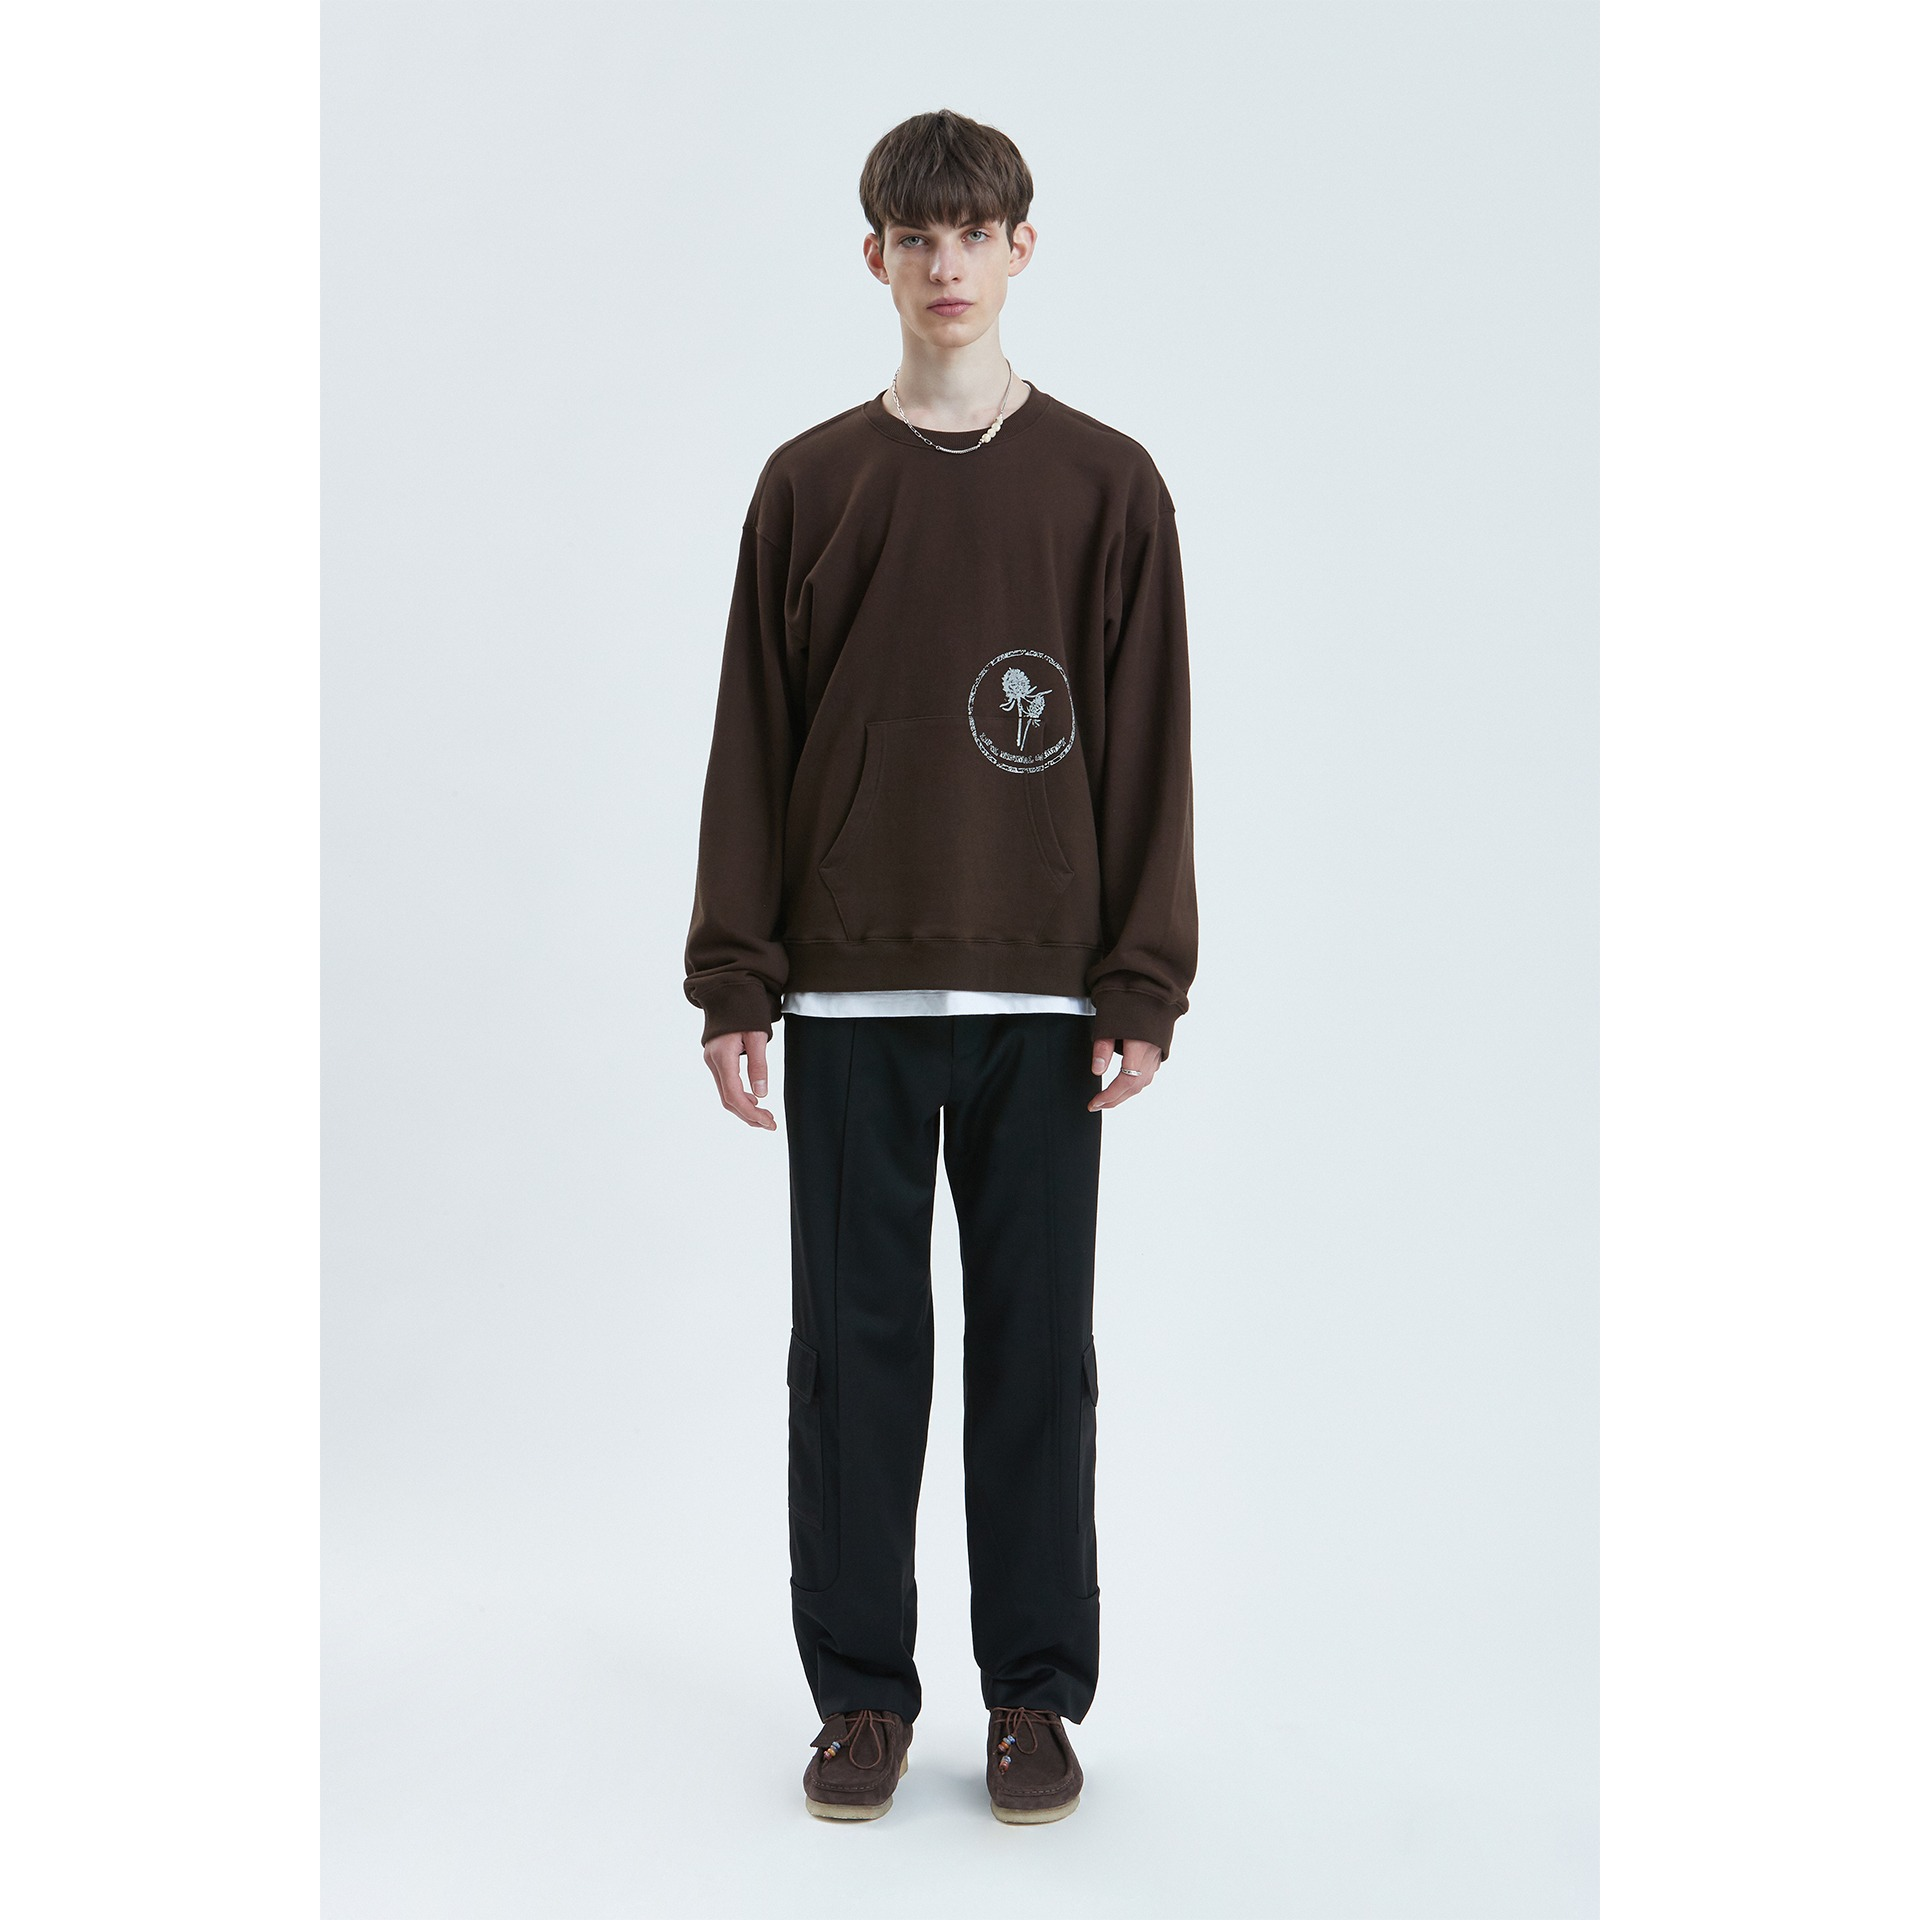 LIFUL STAMP POCKET SWEATSHIRT dark brown